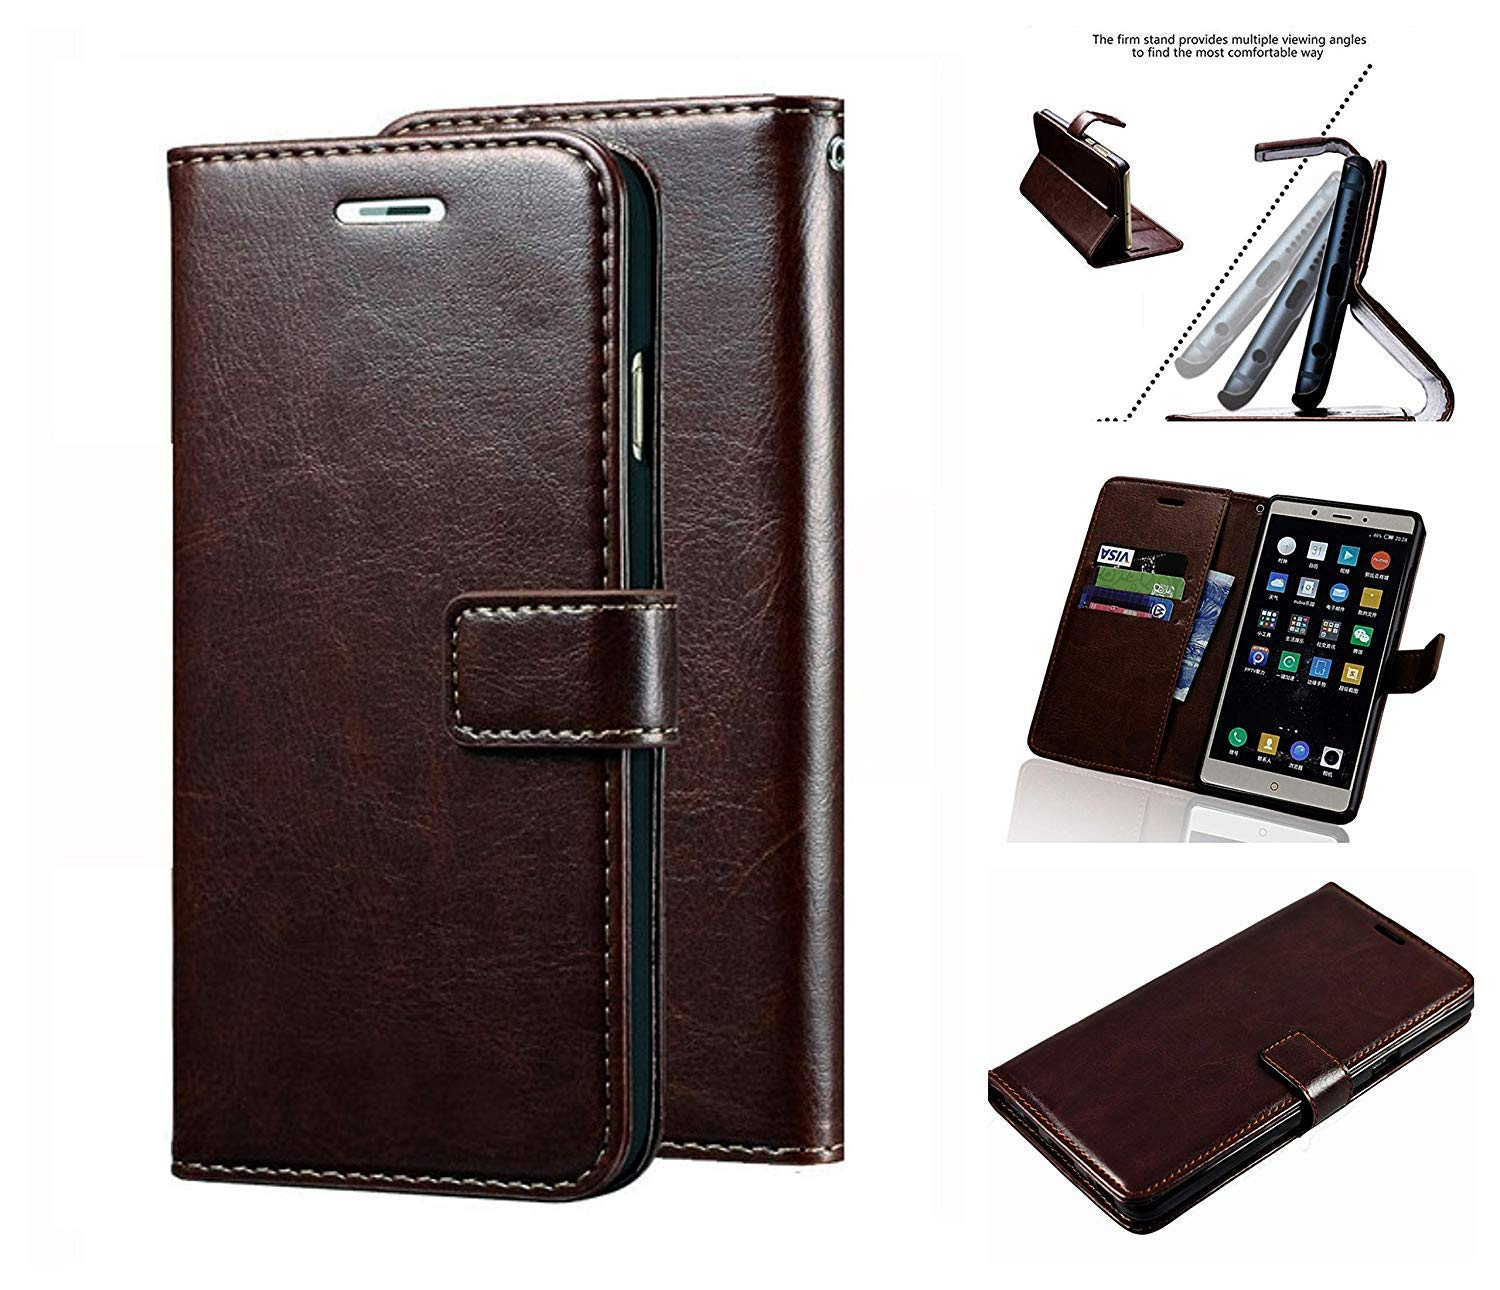 pretty nice e6b1c d6b86 Newbee Vintage Stylish Retro Leather Diary Wallet Book Flip Cover Case for  Asus Zenfone 2 Laser 5.5